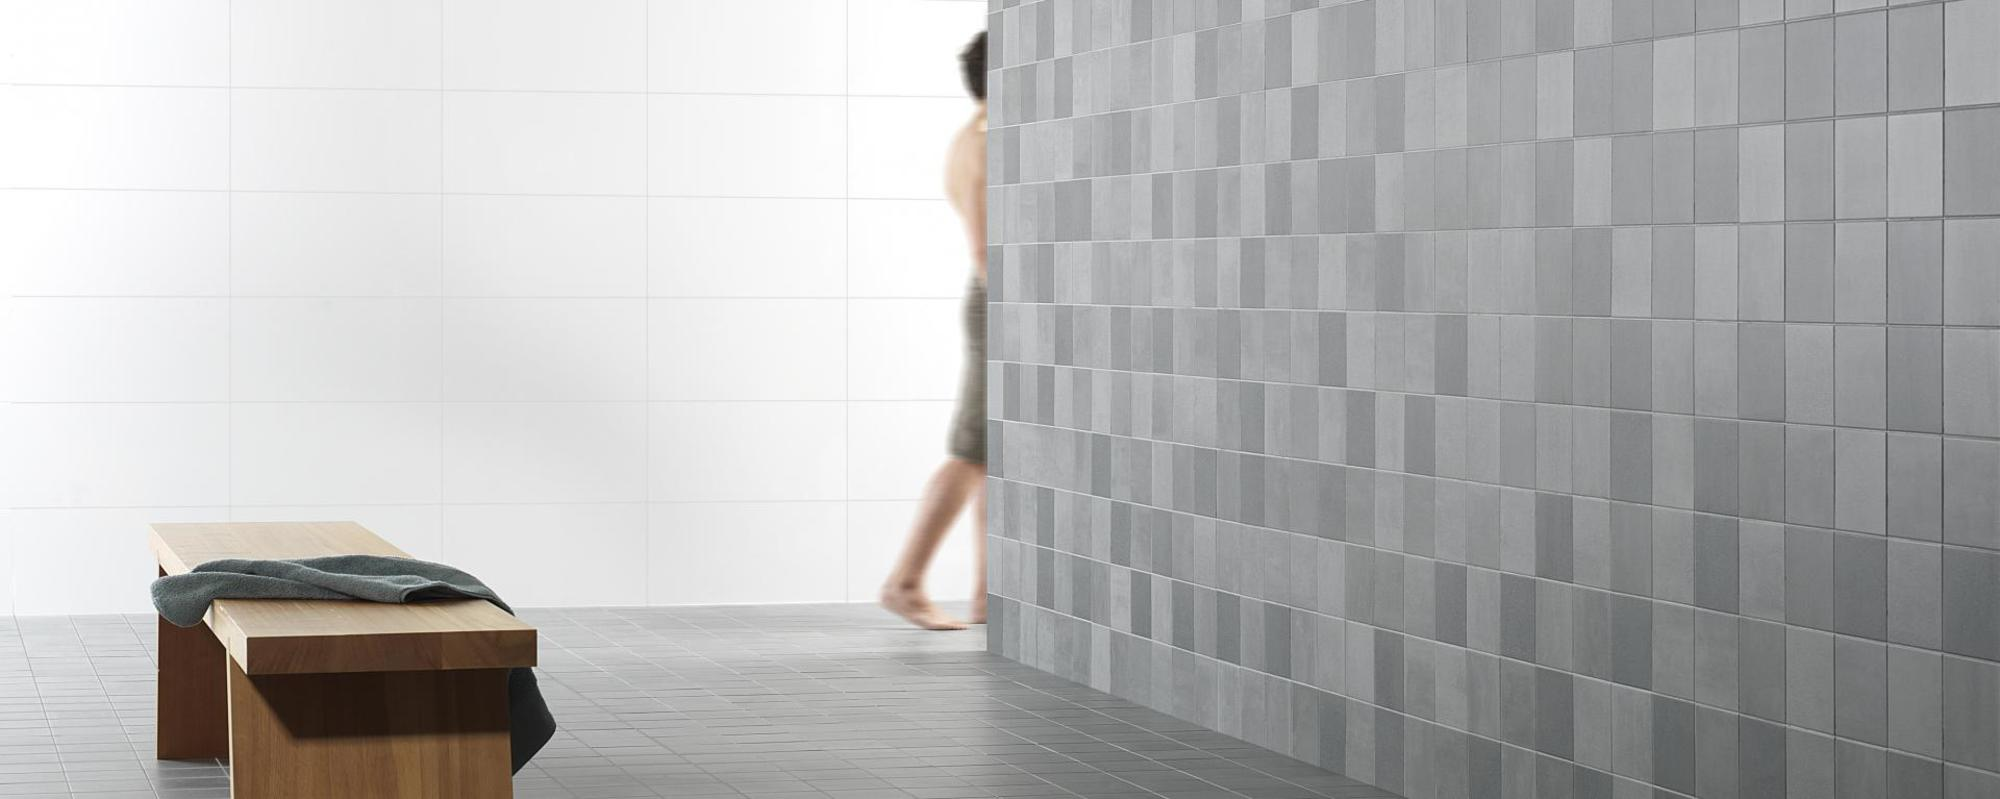 Royal MOSA tiles Scenes green grey 6130V grain & 6131V clay & 6132V sand & 6133V grit 15x15 & 27010 white mat 30x60